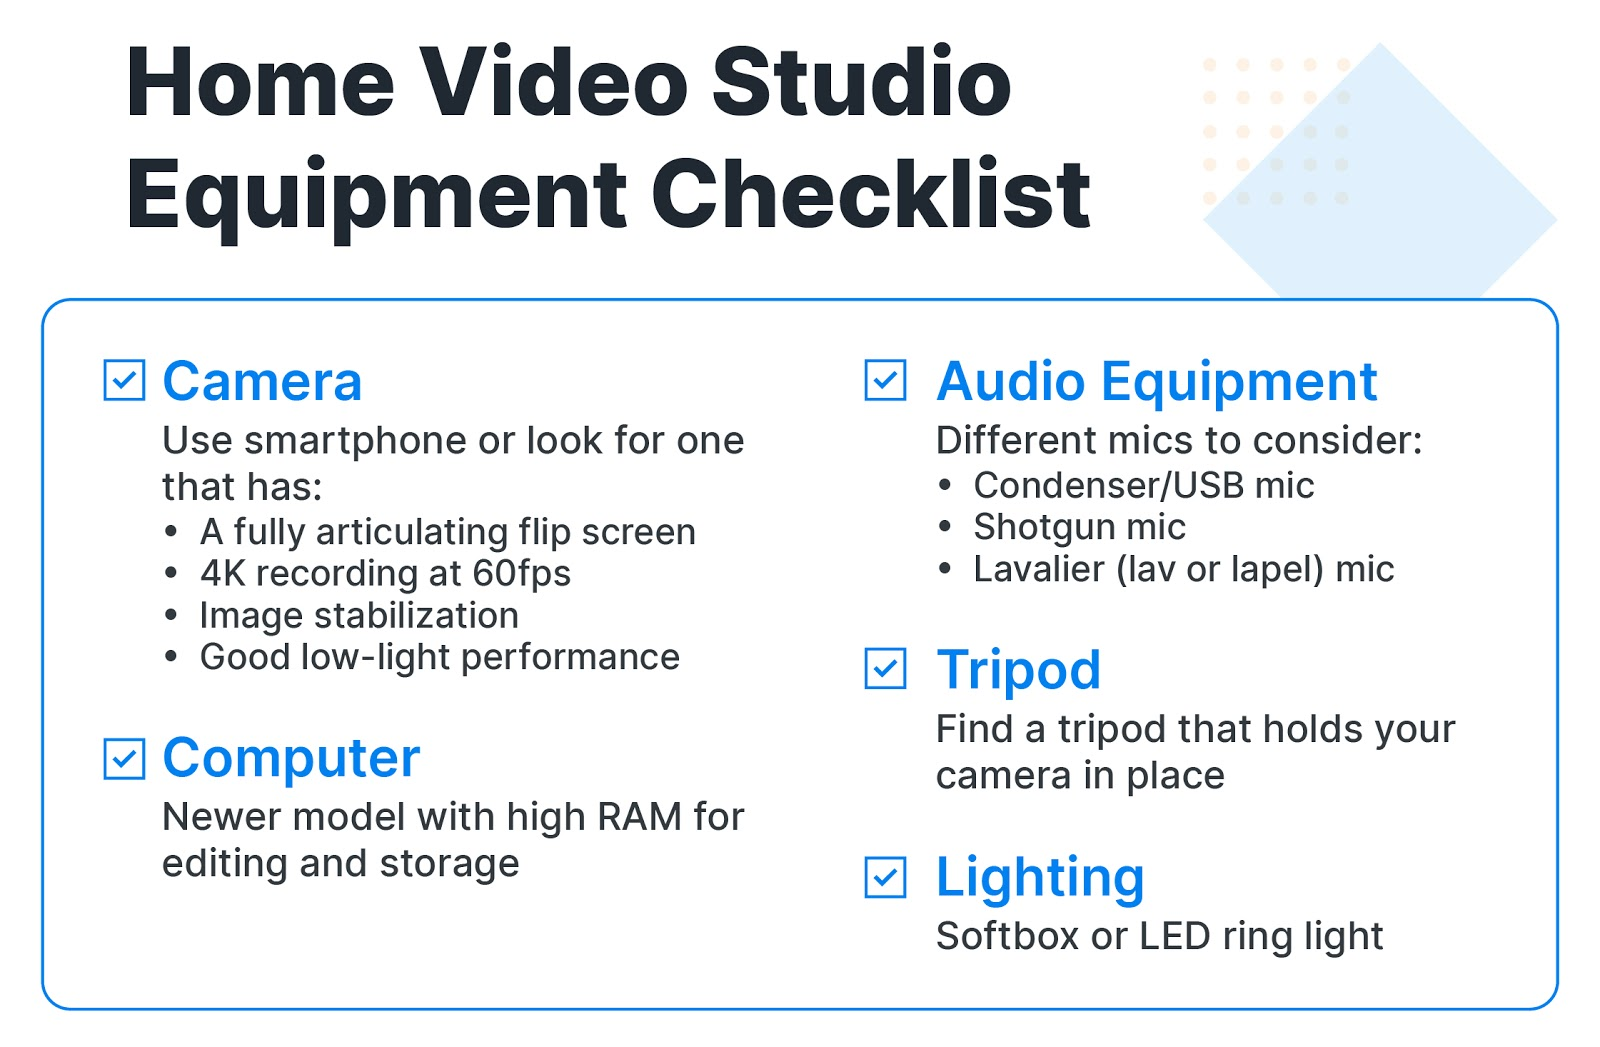 Checklist of items needed for a home video studio